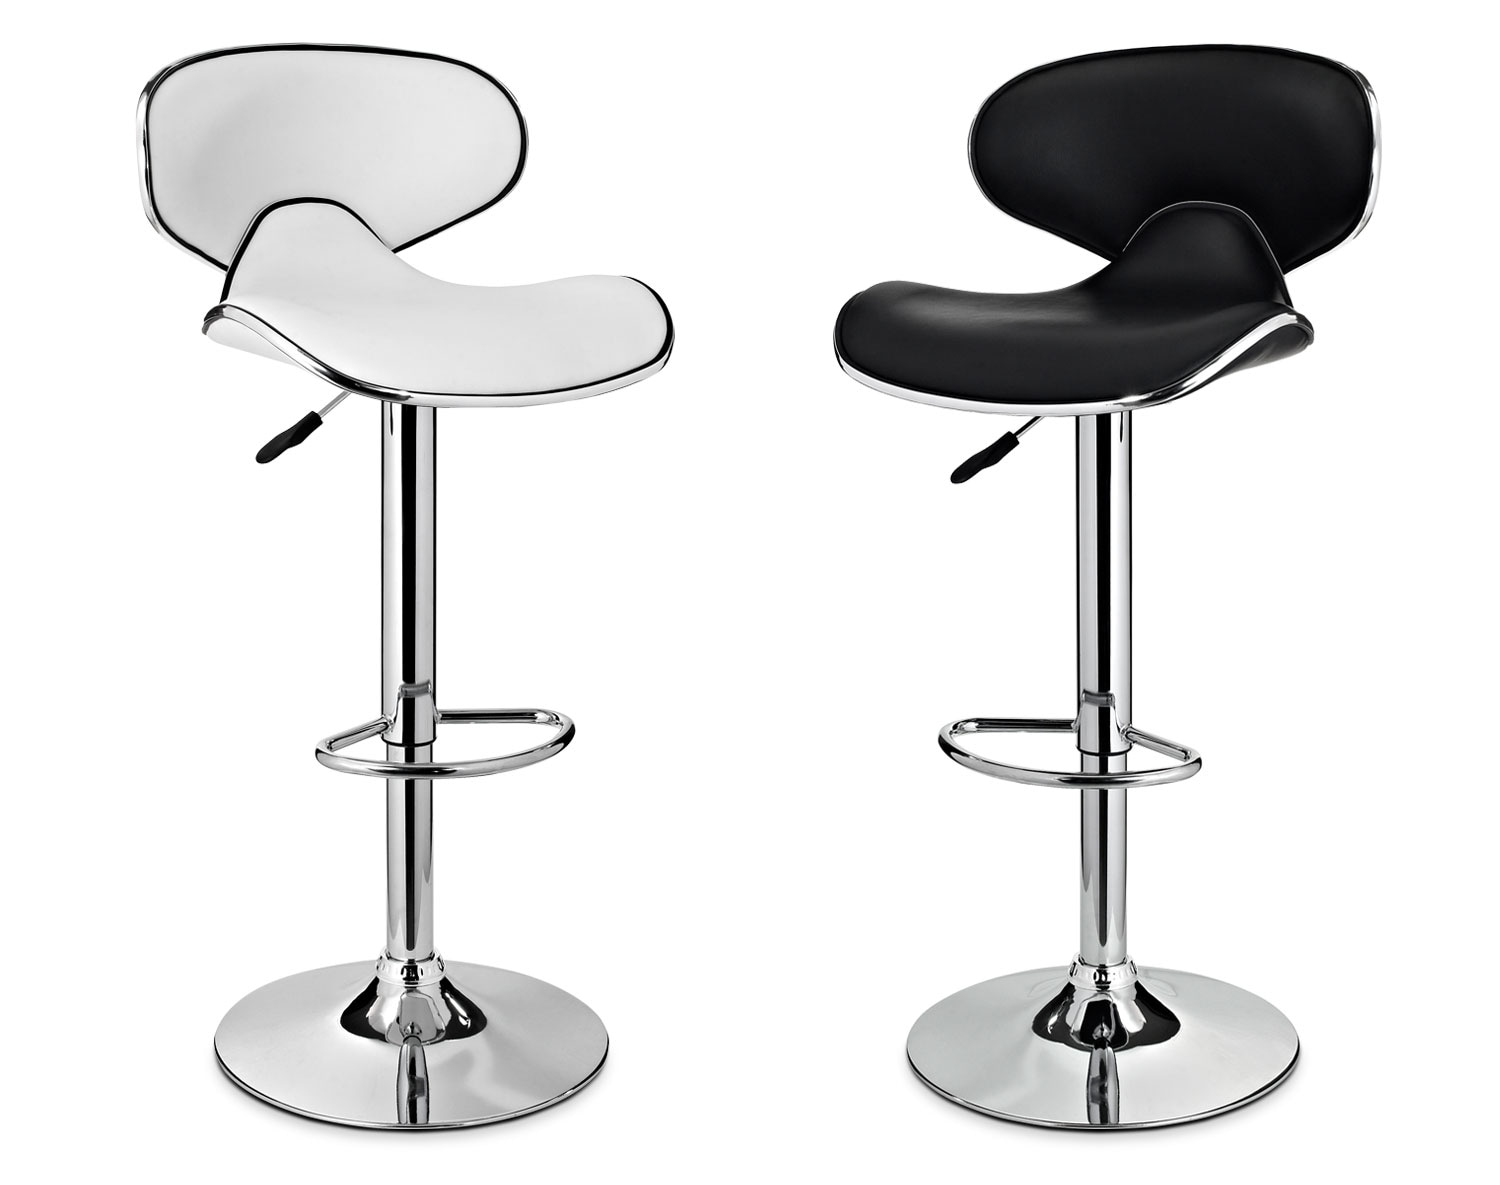 The Liv Barstool Collection